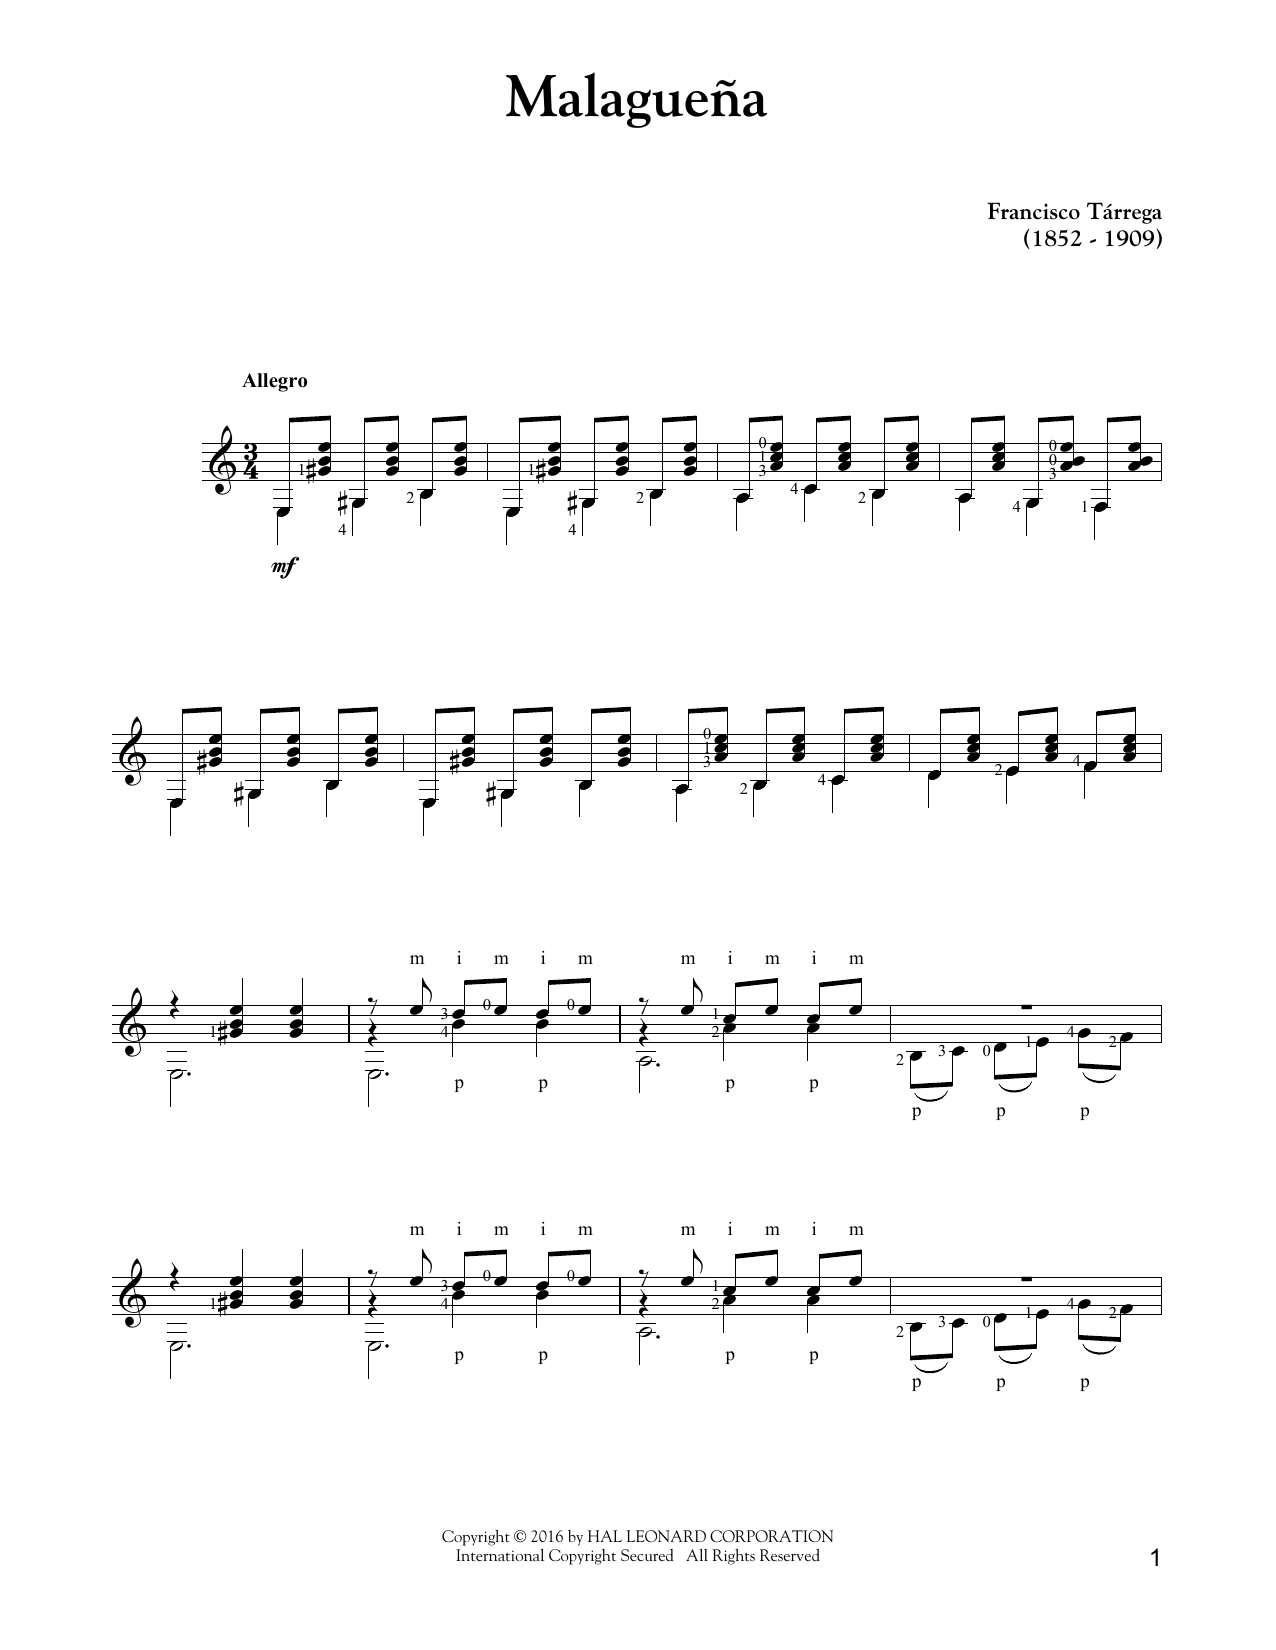 Malagueña Sheet Music